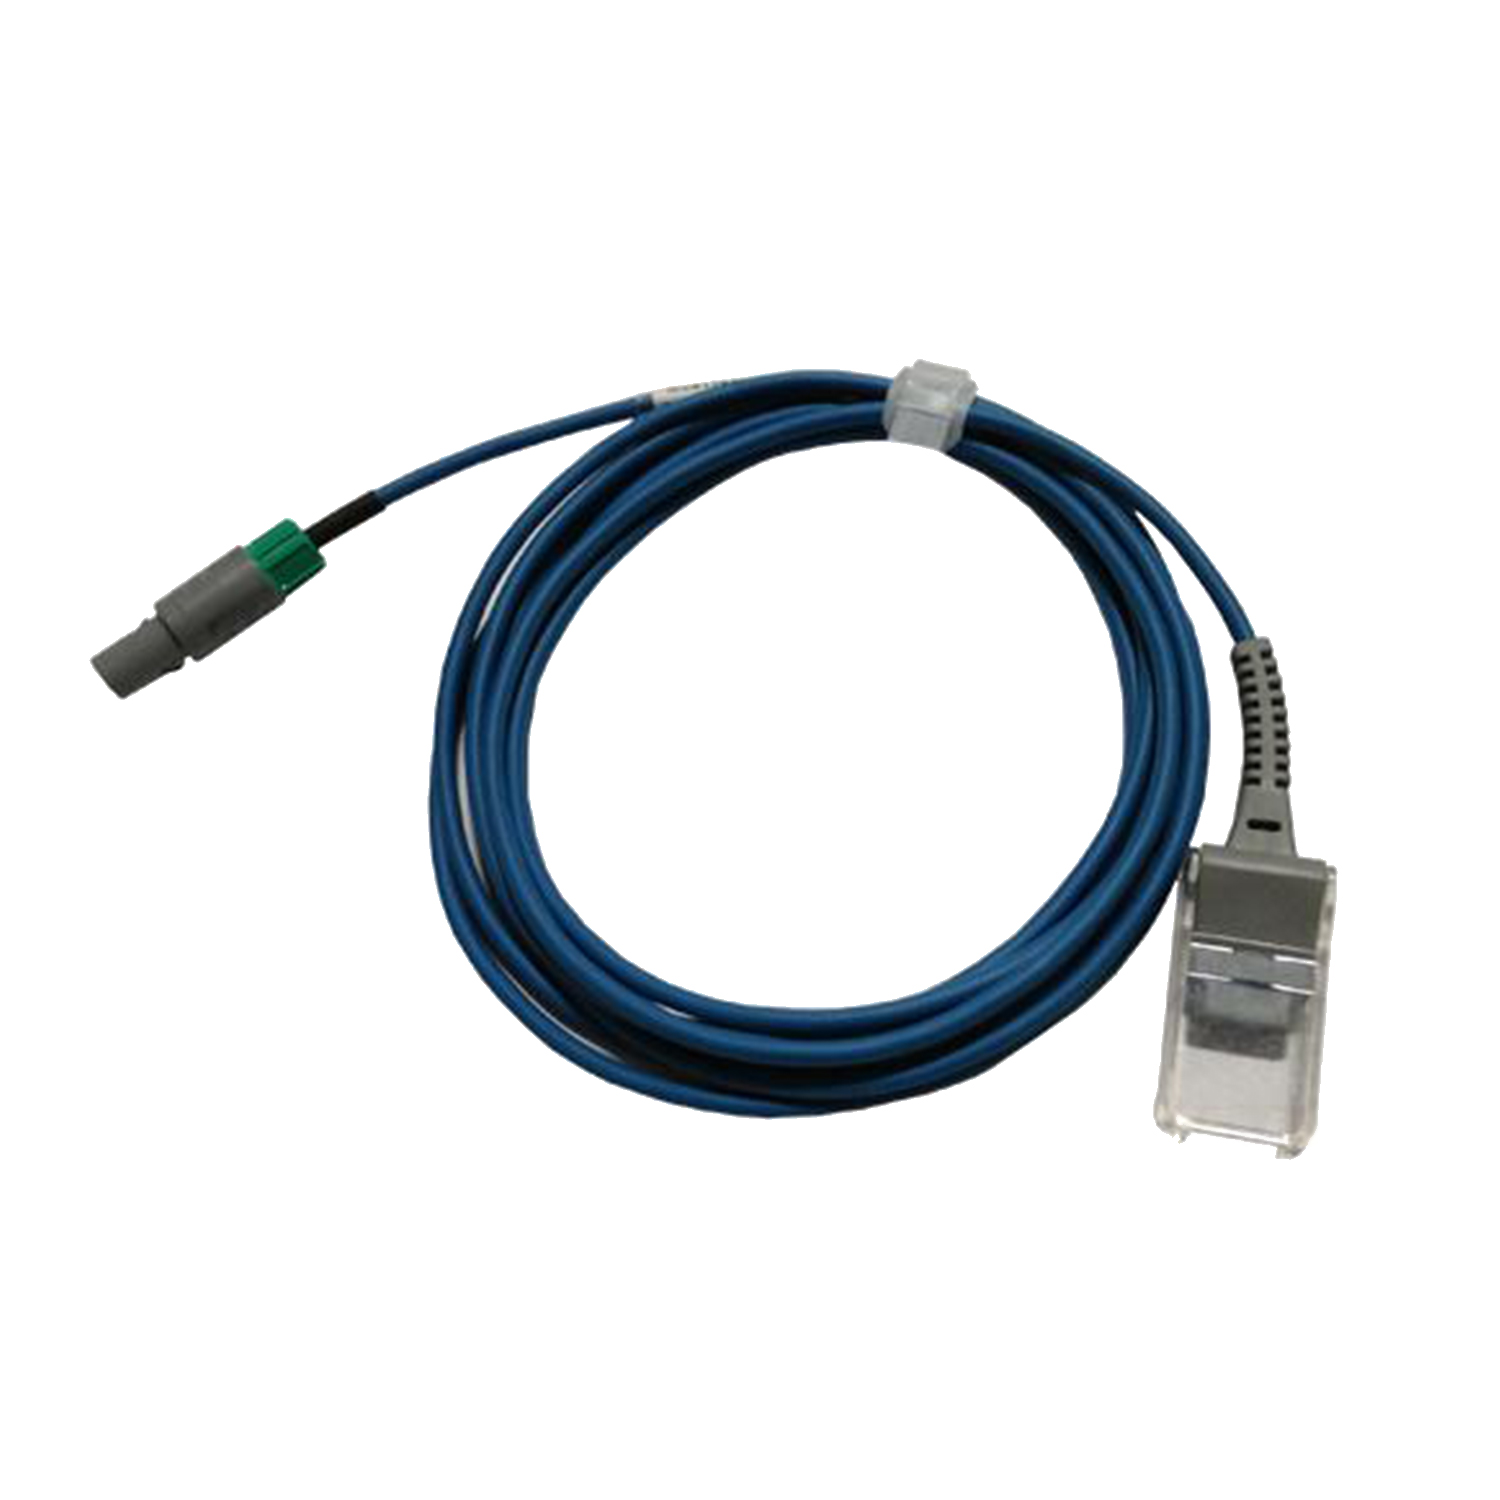 Nellcor Compatible Extension SP02 Cable For Avante Waveline Series